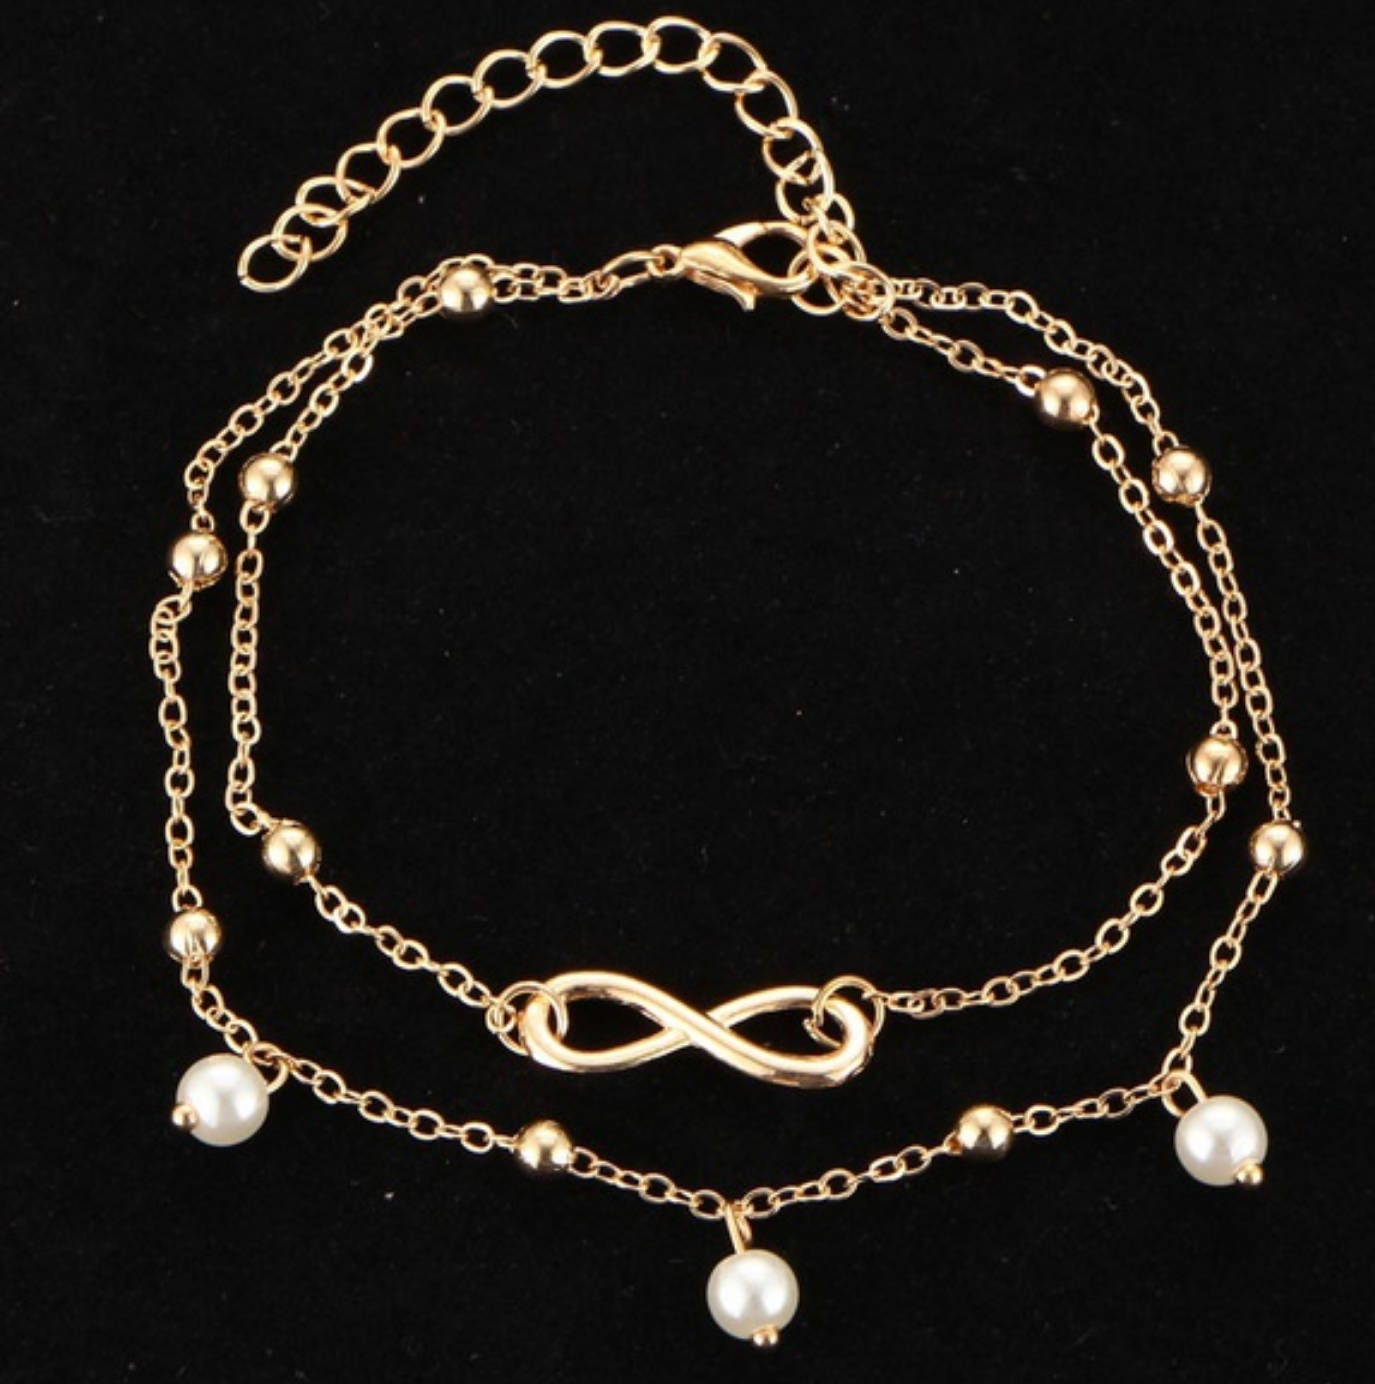 8ed0b497368 Gold plated anklet bracelet infinity double with pearl design